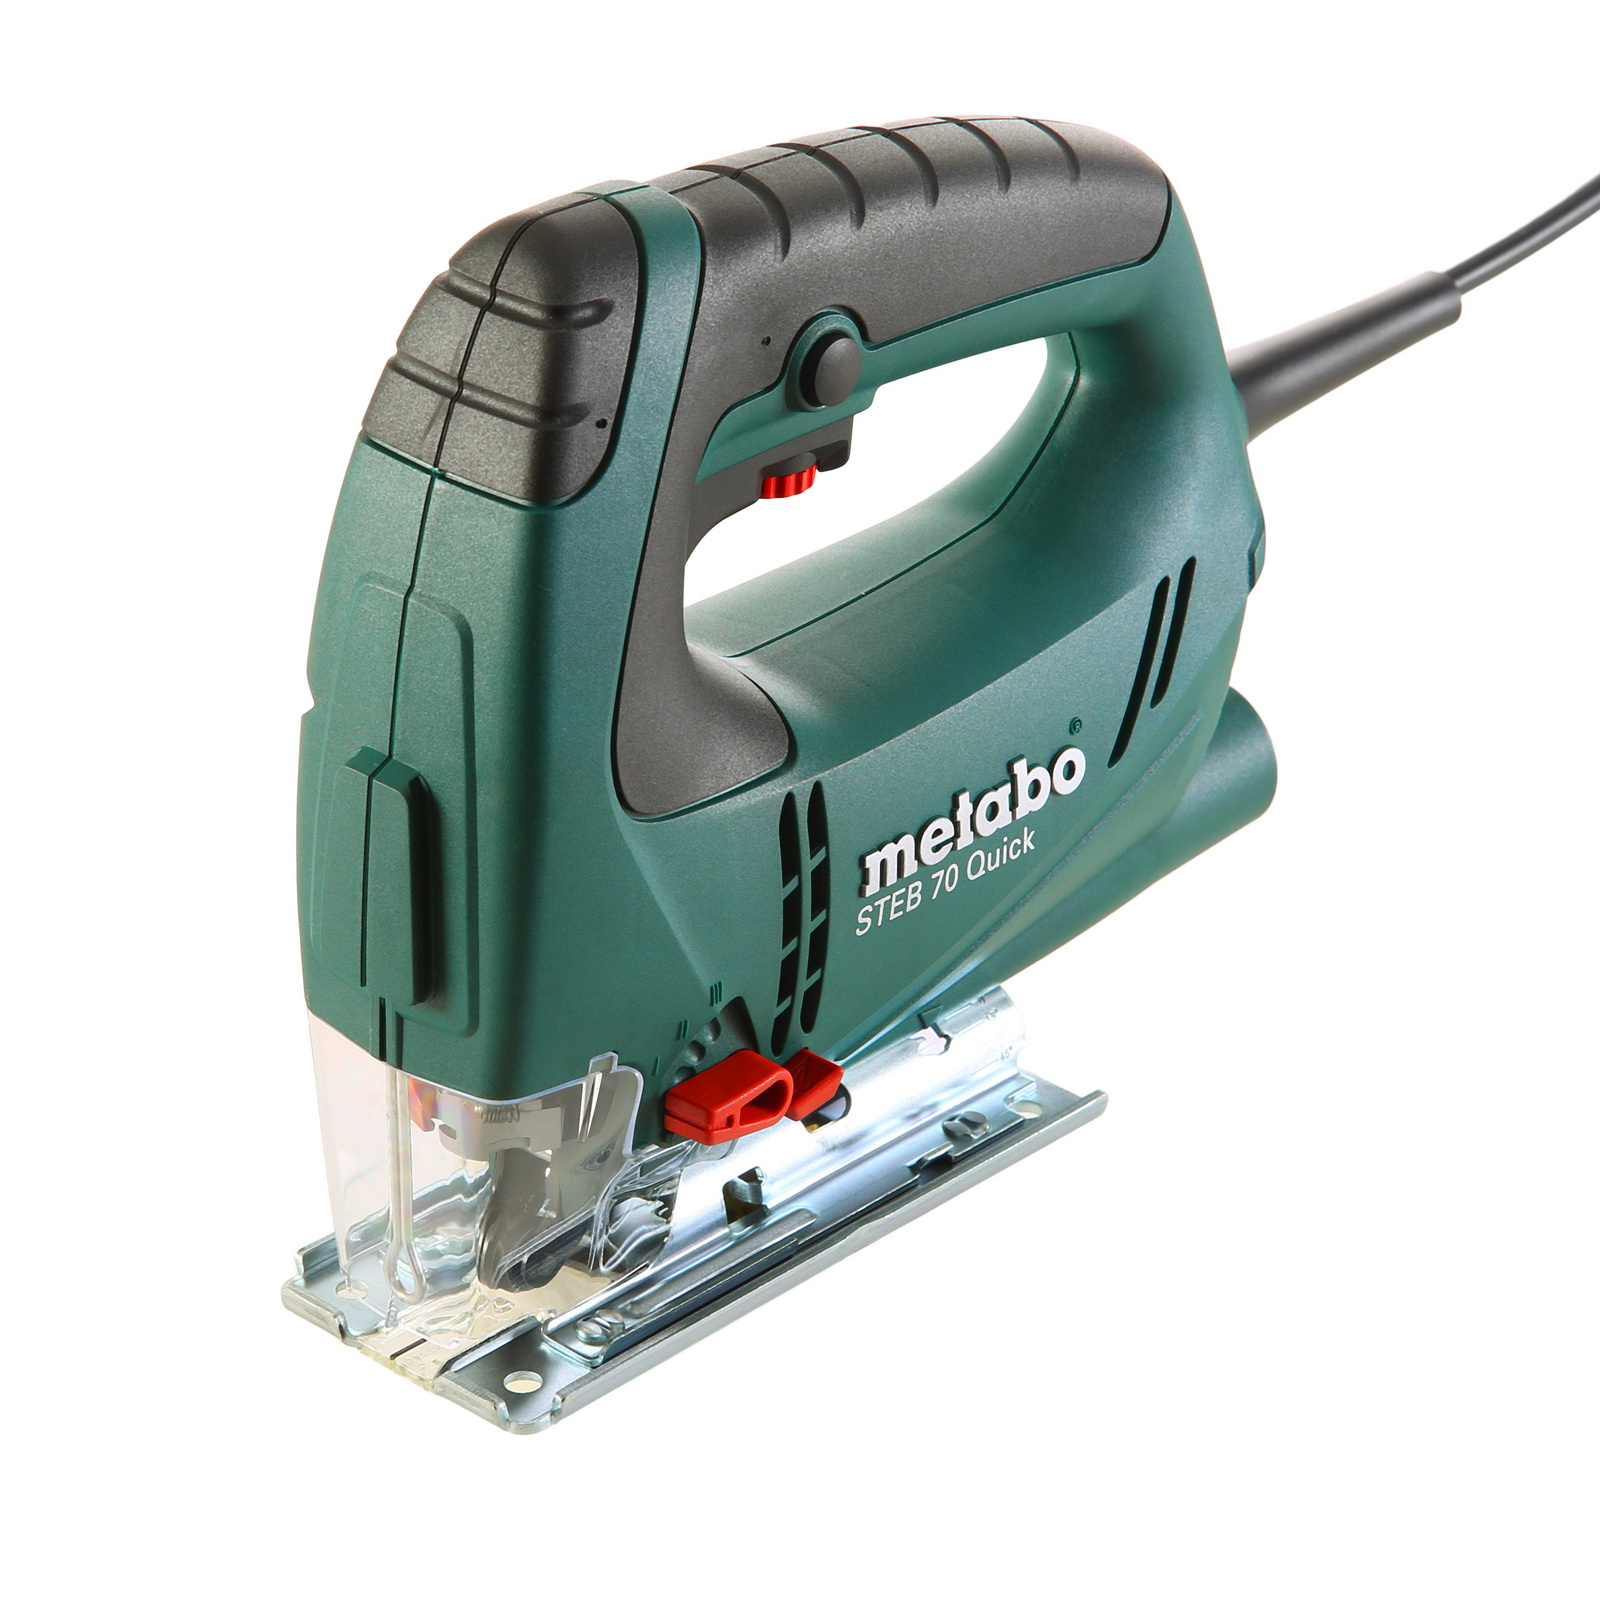 Лобзик Metabo Steb 70 quick (601040500) лобзик metabo steb 80 quick 601041500